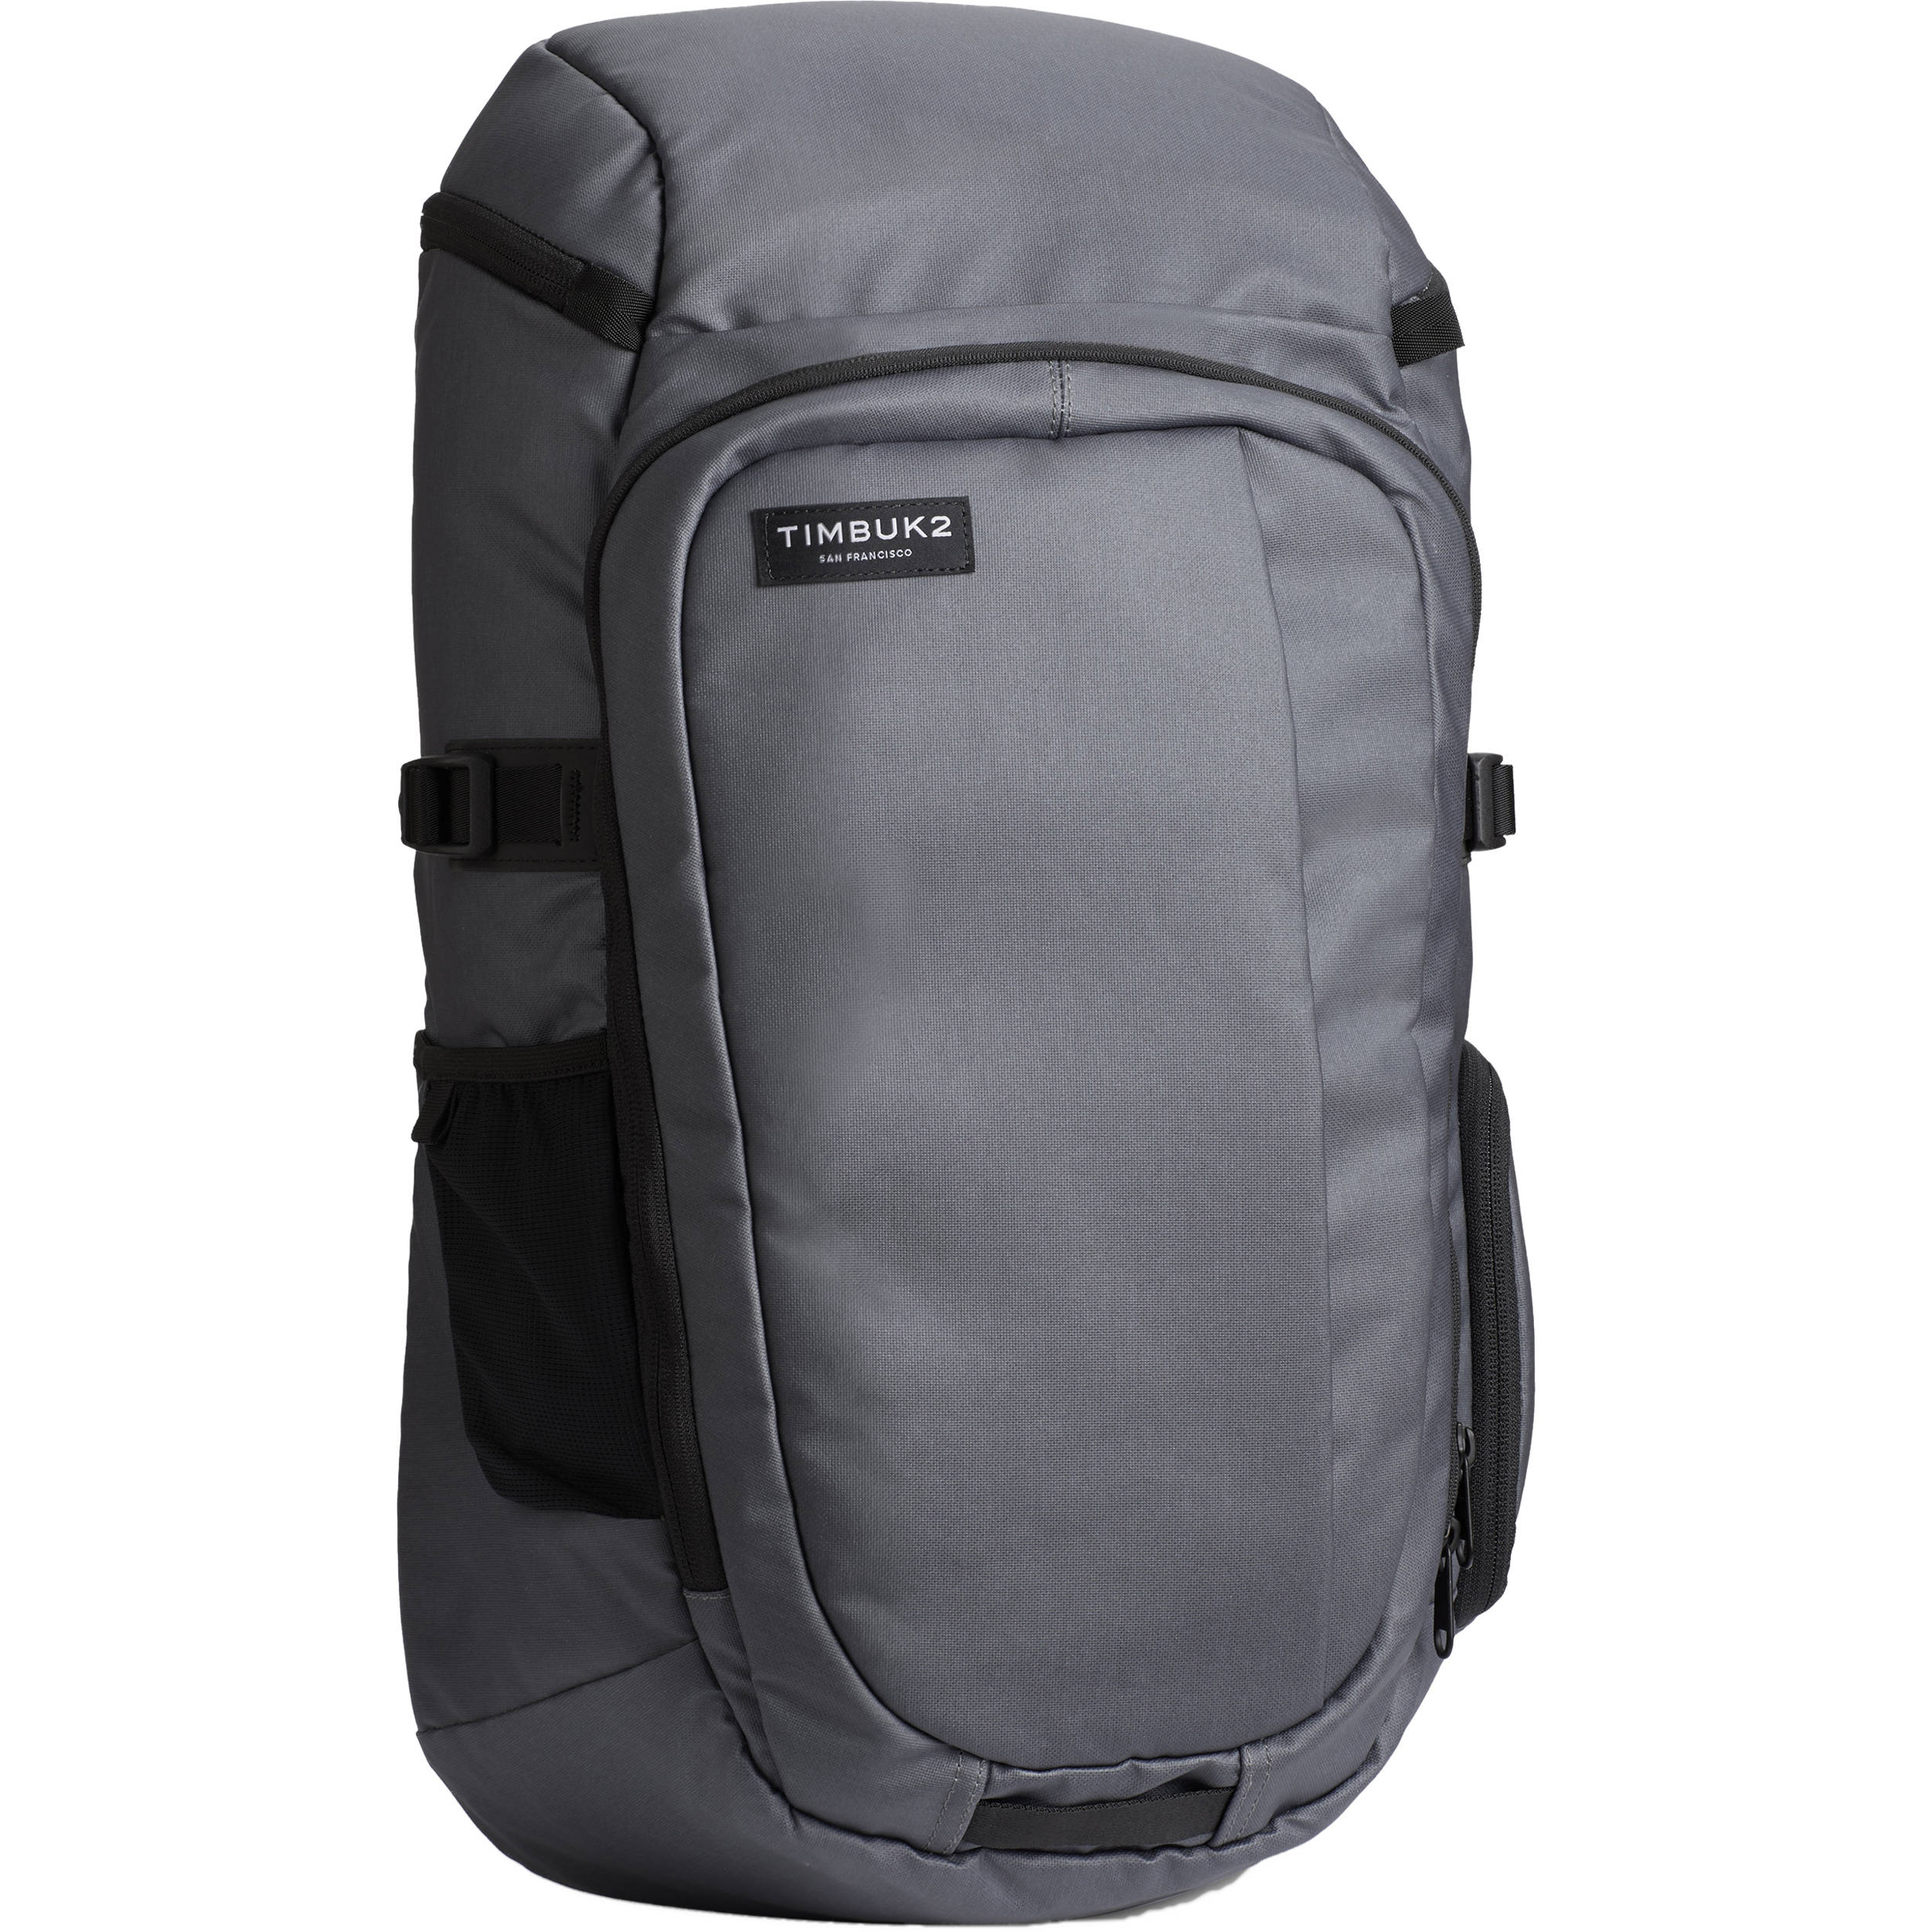 Timbuk2 Armory Laptop Backpack (Storm). B H   TIARMLBPSTM MFR   552-3-1314 9a50dcce84324